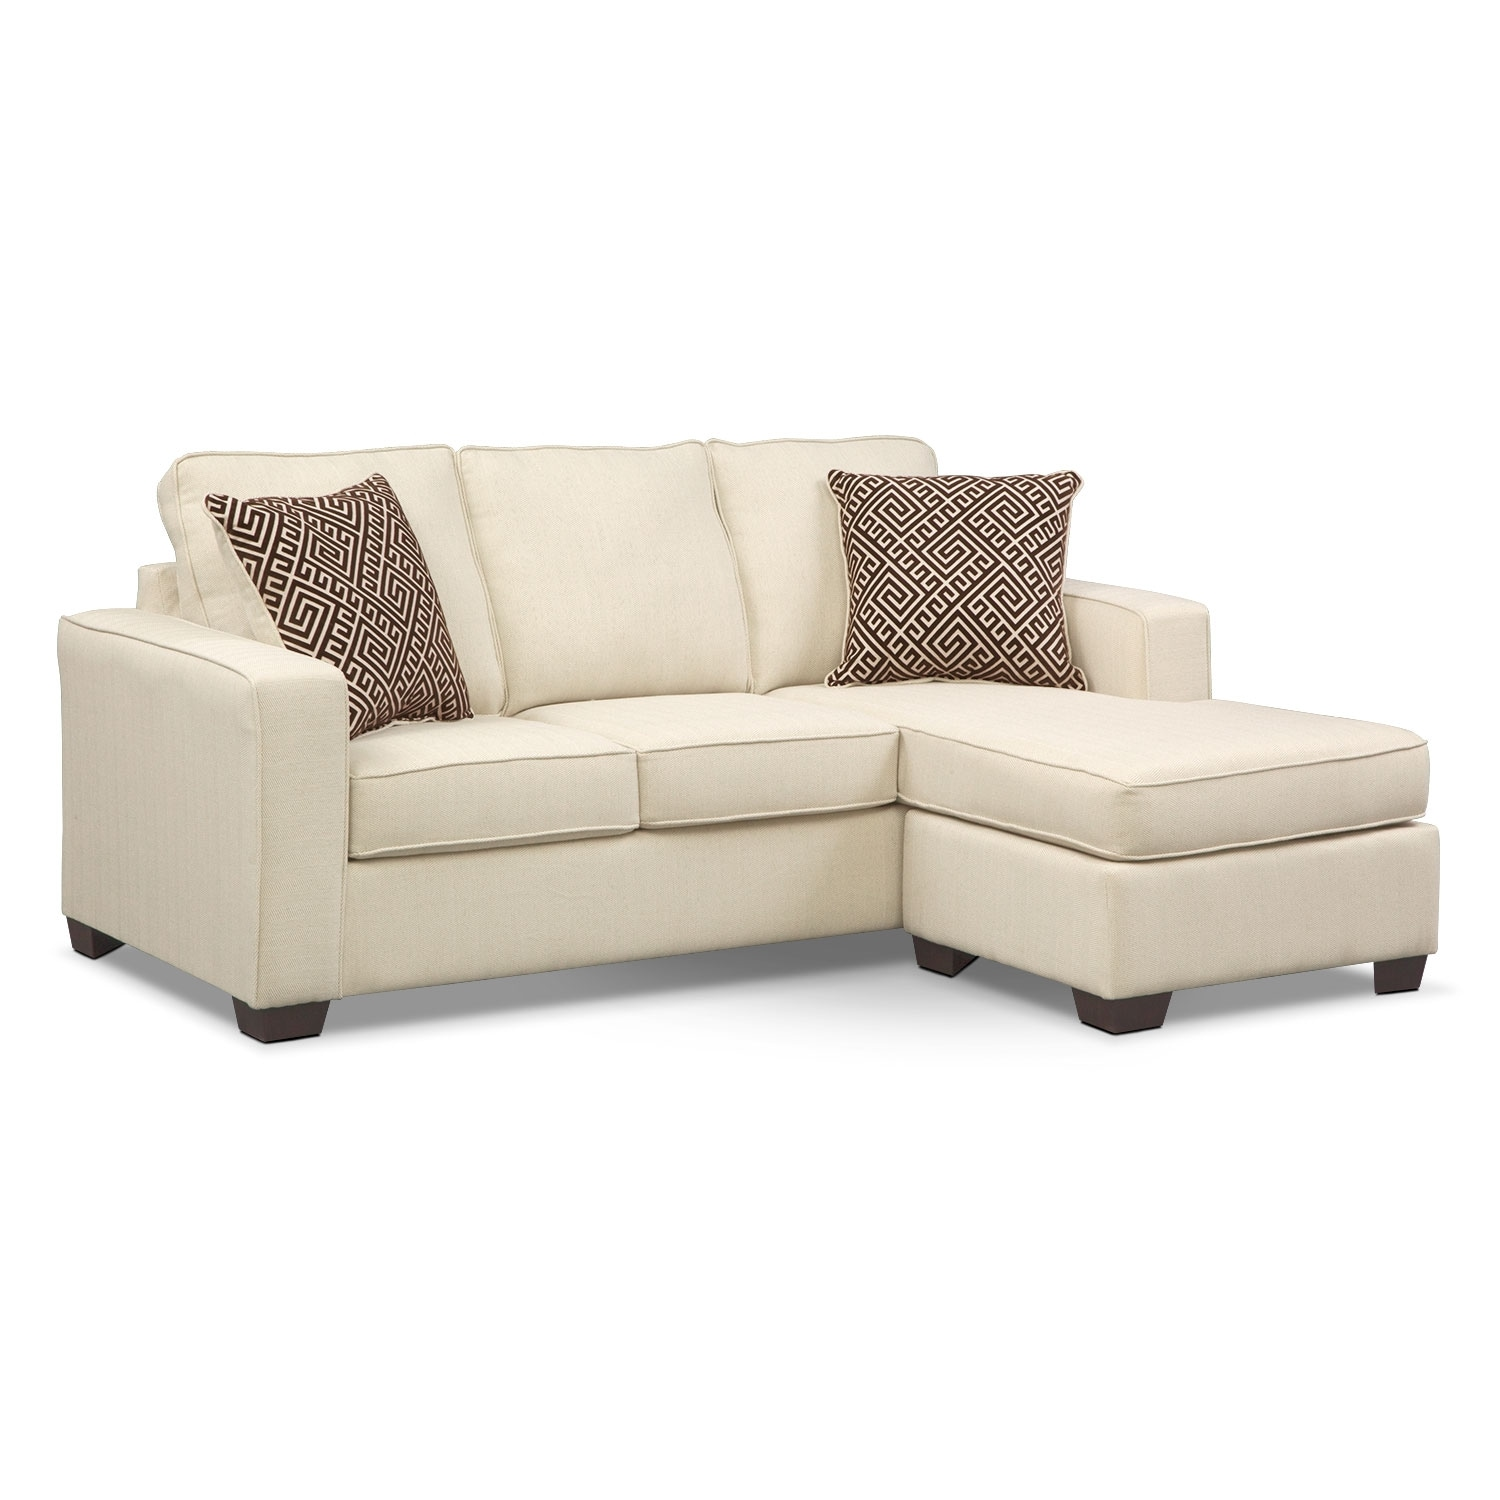 Sterling memory foam sleeper sofa with chaise beige value city furniture Sofa sleeper loveseat